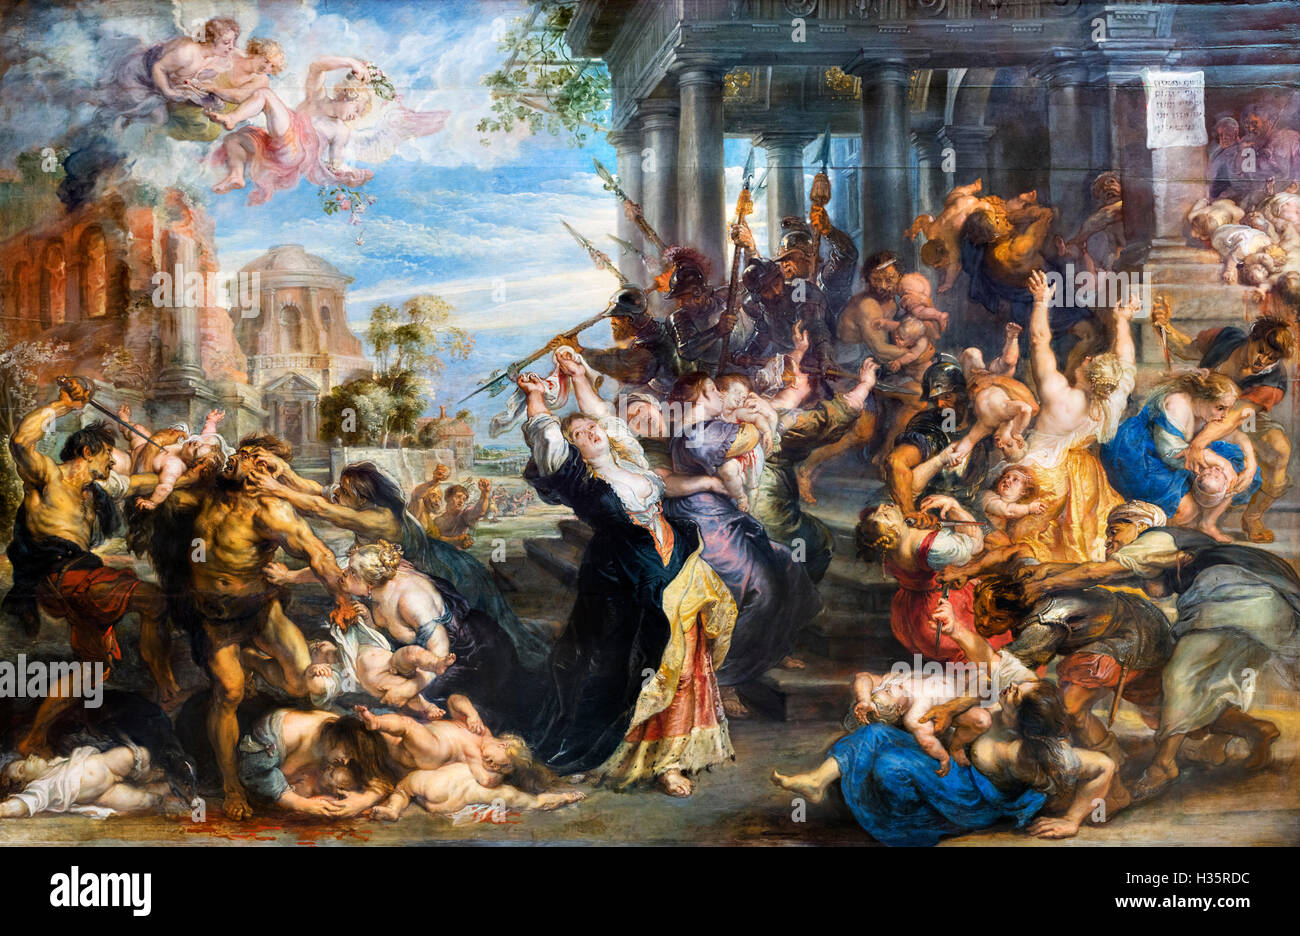 The Massacre of the Innocents by Peter Paul Rubens (1577-1640). Oil on canvas, c.1638 - Stock Image